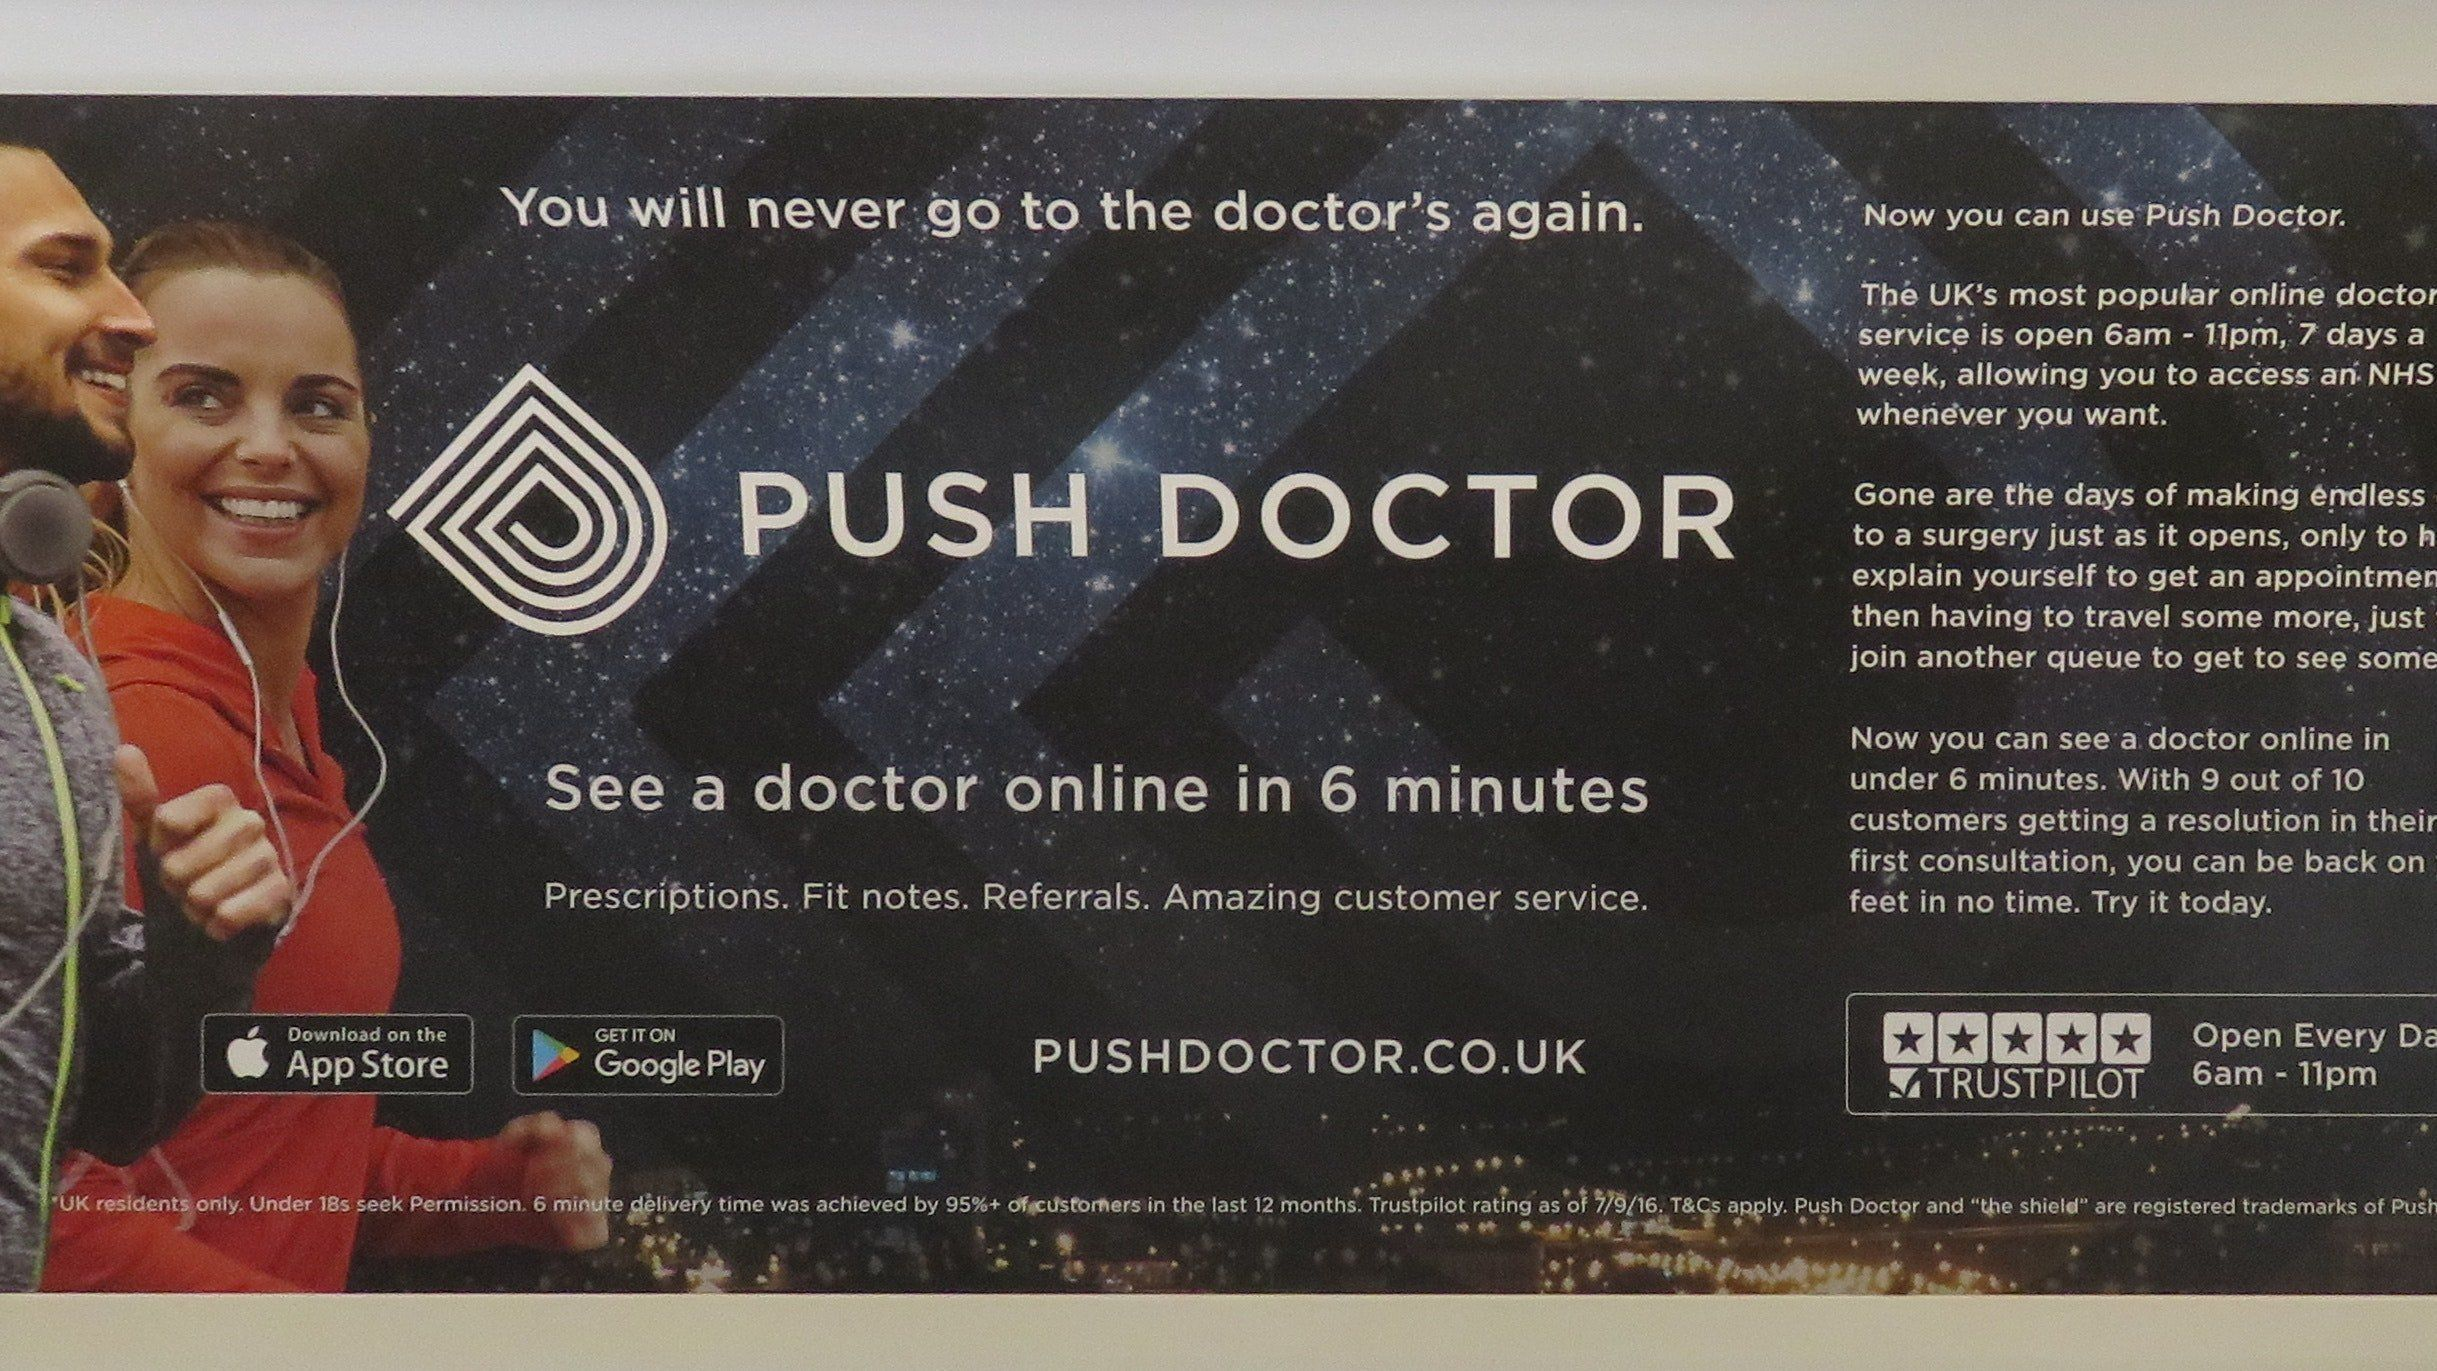 Push Doctor Ads Banned For Implying Links To